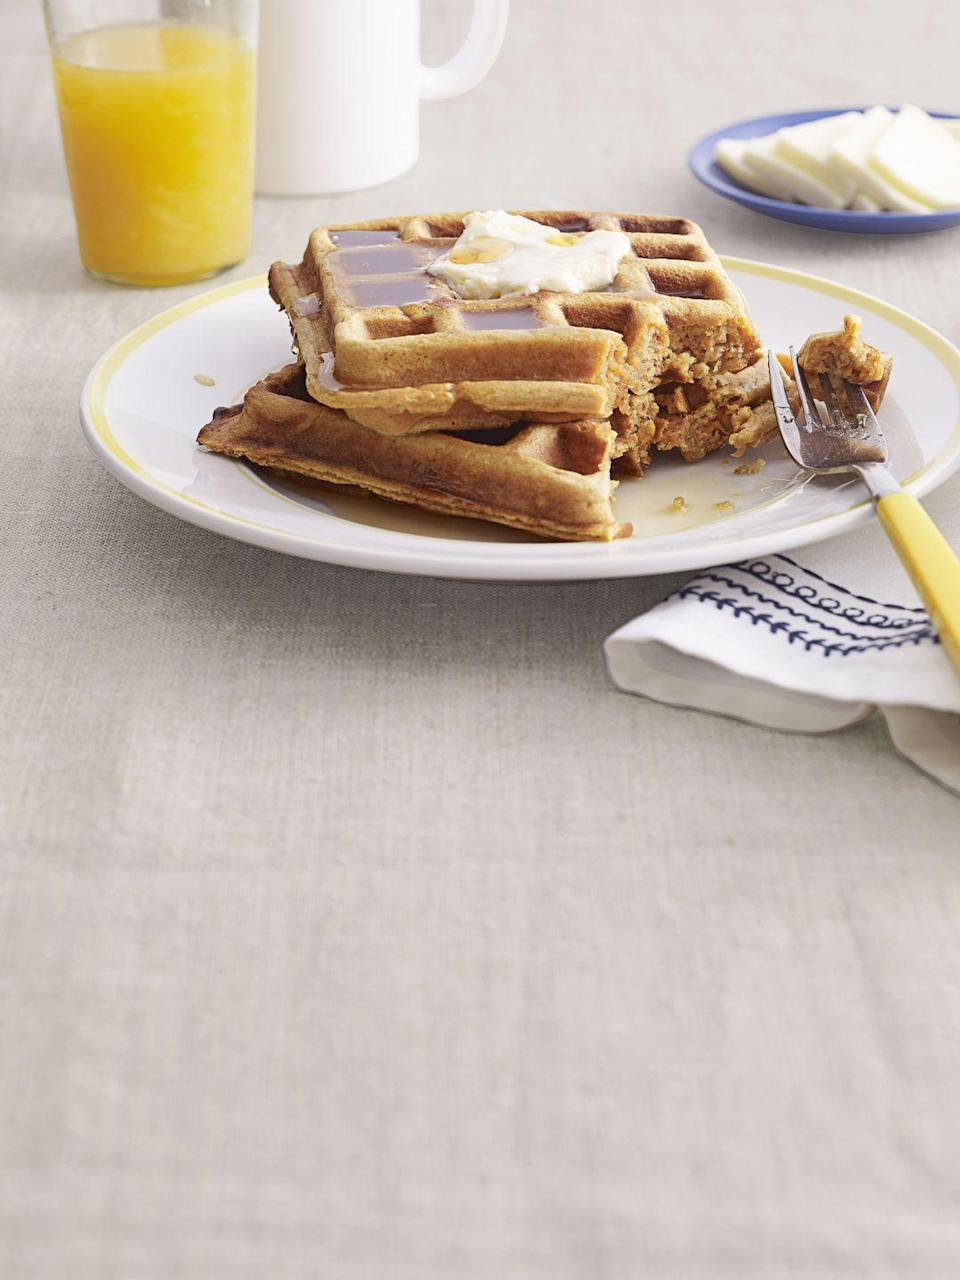 """<p>Linda Owens Surfus, the <em>Country Living </em>reader who created this recipe, recommends grating orange into the batter for extra zest.</p><p><strong><a href=""""https://www.countryliving.com/food-drinks/recipes/a3716/sweet-potato-waffles-recipe-clx1111/"""" rel=""""nofollow noopener"""" target=""""_blank"""" data-ylk=""""slk:Get the recipe"""" class=""""link rapid-noclick-resp"""">Get the recipe</a>.</strong></p>"""